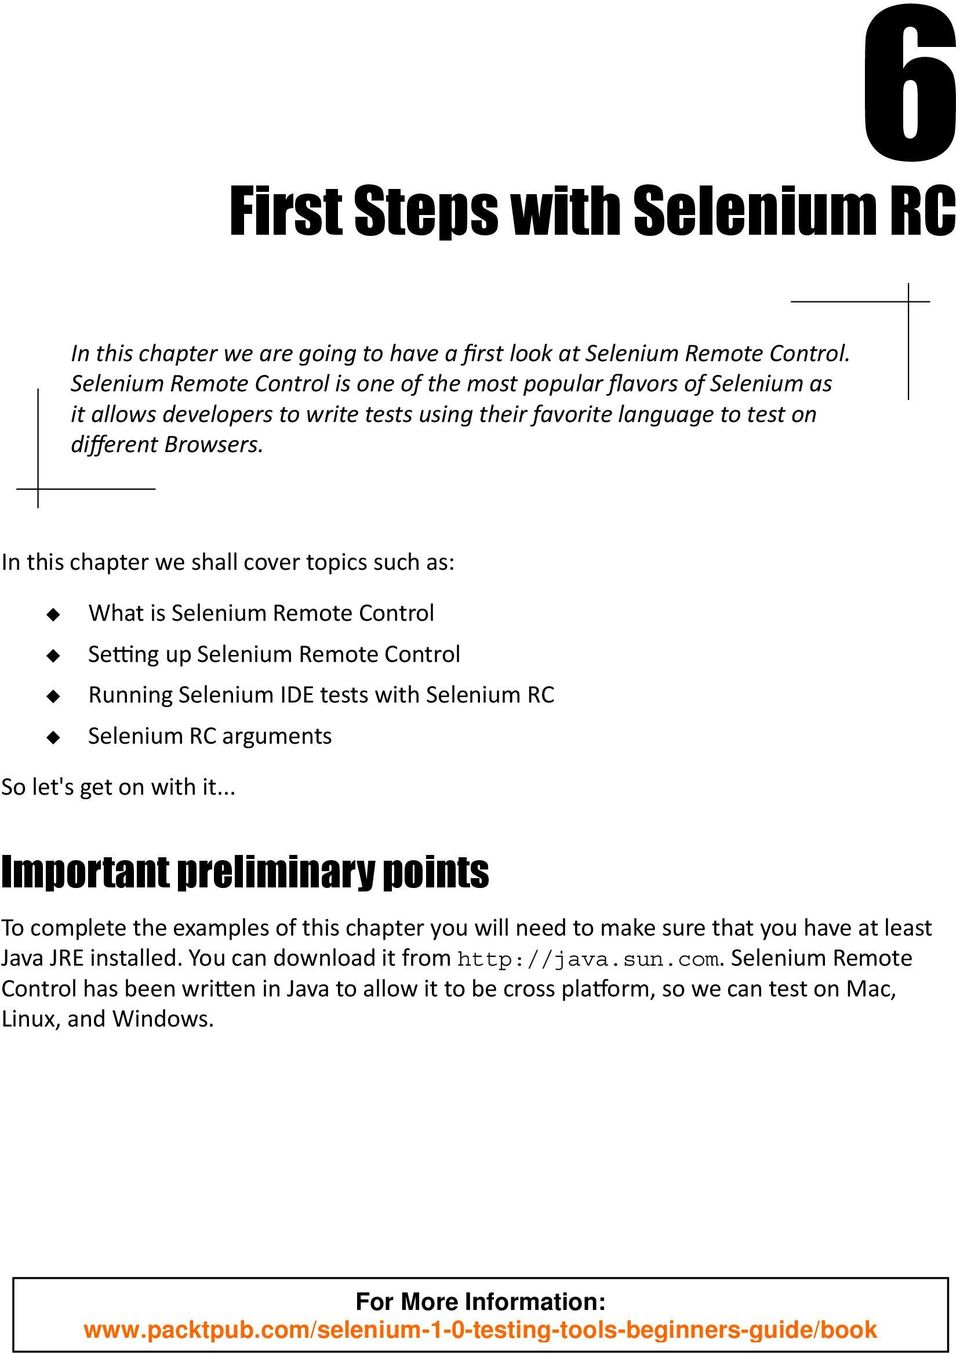 In this chapter we shall cover topics such as: What is Selenium Remote Control Seng up Selenium Remote Control Running Selenium IDE tests with Selenium RC Selenium RC arguments So let's get on with